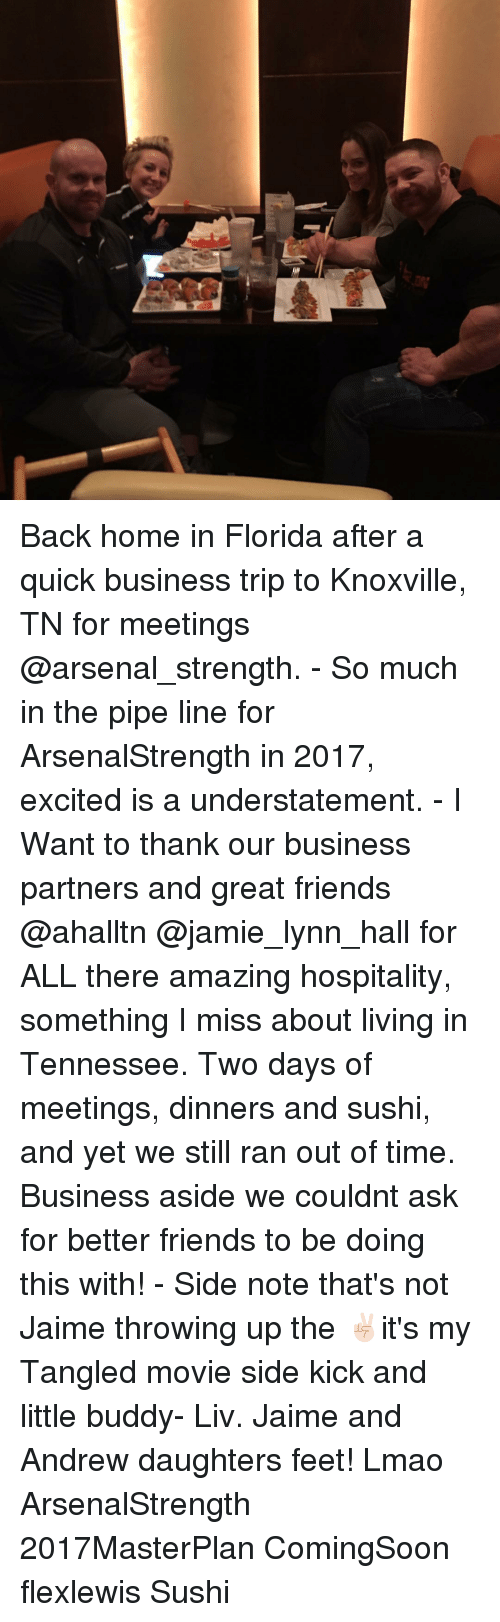 Excitment: Back home in Florida after a quick business trip to Knoxville, TN for meetings @arsenal_strength. - So much in the pipe line for ArsenalStrength in 2017, excited is a understatement. - I Want to thank our business partners and great friends @ahalltn @jamie_lynn_hall for ALL there amazing hospitality, something I miss about living in Tennessee. Two days of meetings, dinners and sushi, and yet we still ran out of time. Business aside we couldnt ask for better friends to be doing this with! - Side note that's not Jaime throwing up the ✌🏻it's my Tangled movie side kick and little buddy- Liv. Jaime and Andrew daughters feet! Lmao ArsenalStrength 2017MasterPlan ComingSoon flexlewis Sushi